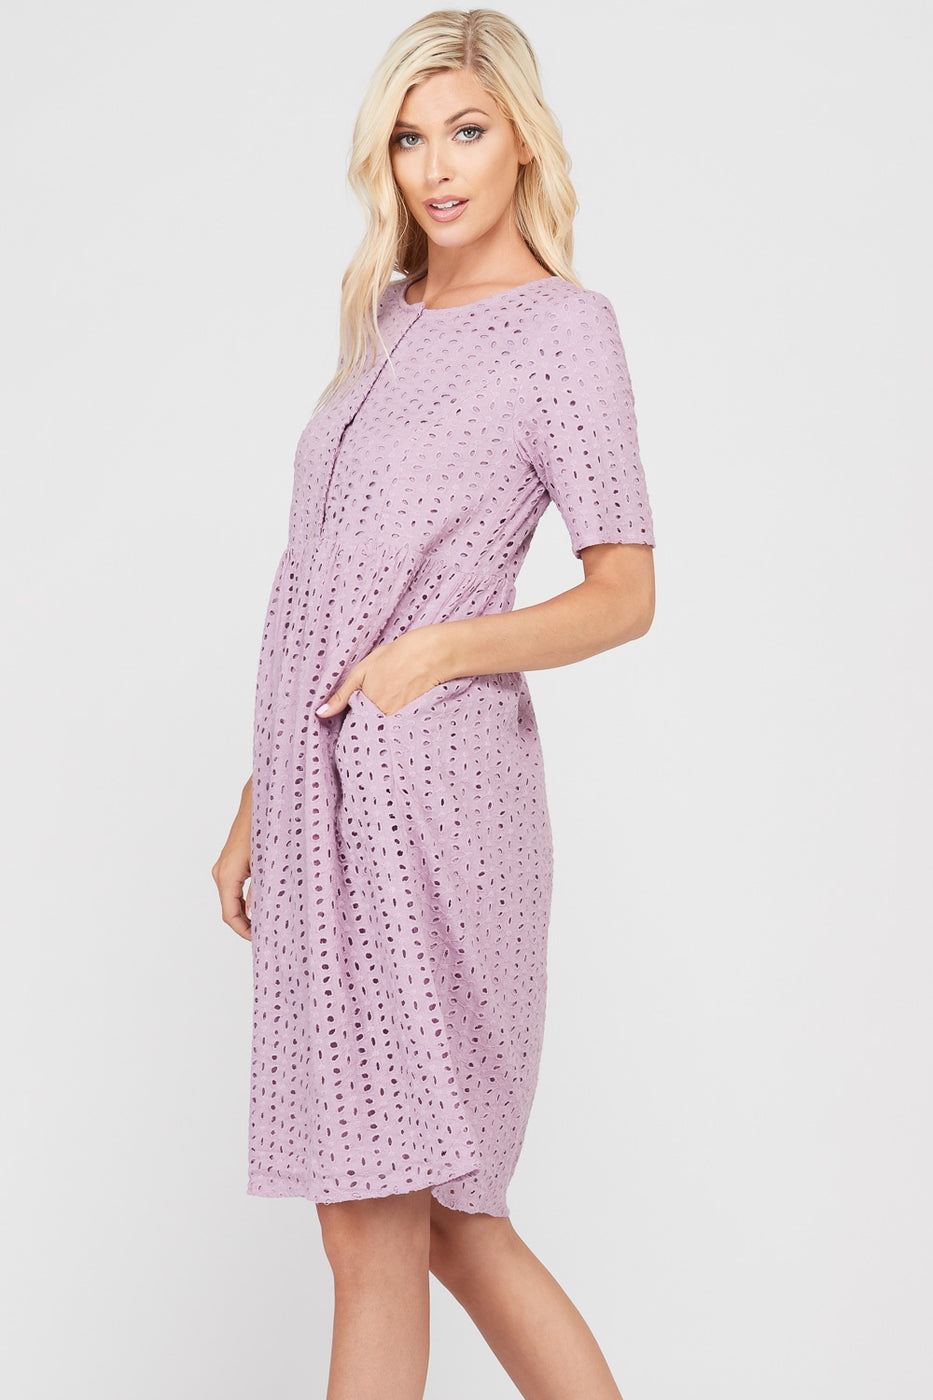 Aliyah Short Sleeve Eyelet Midi Dress With Front Button Siin Bees